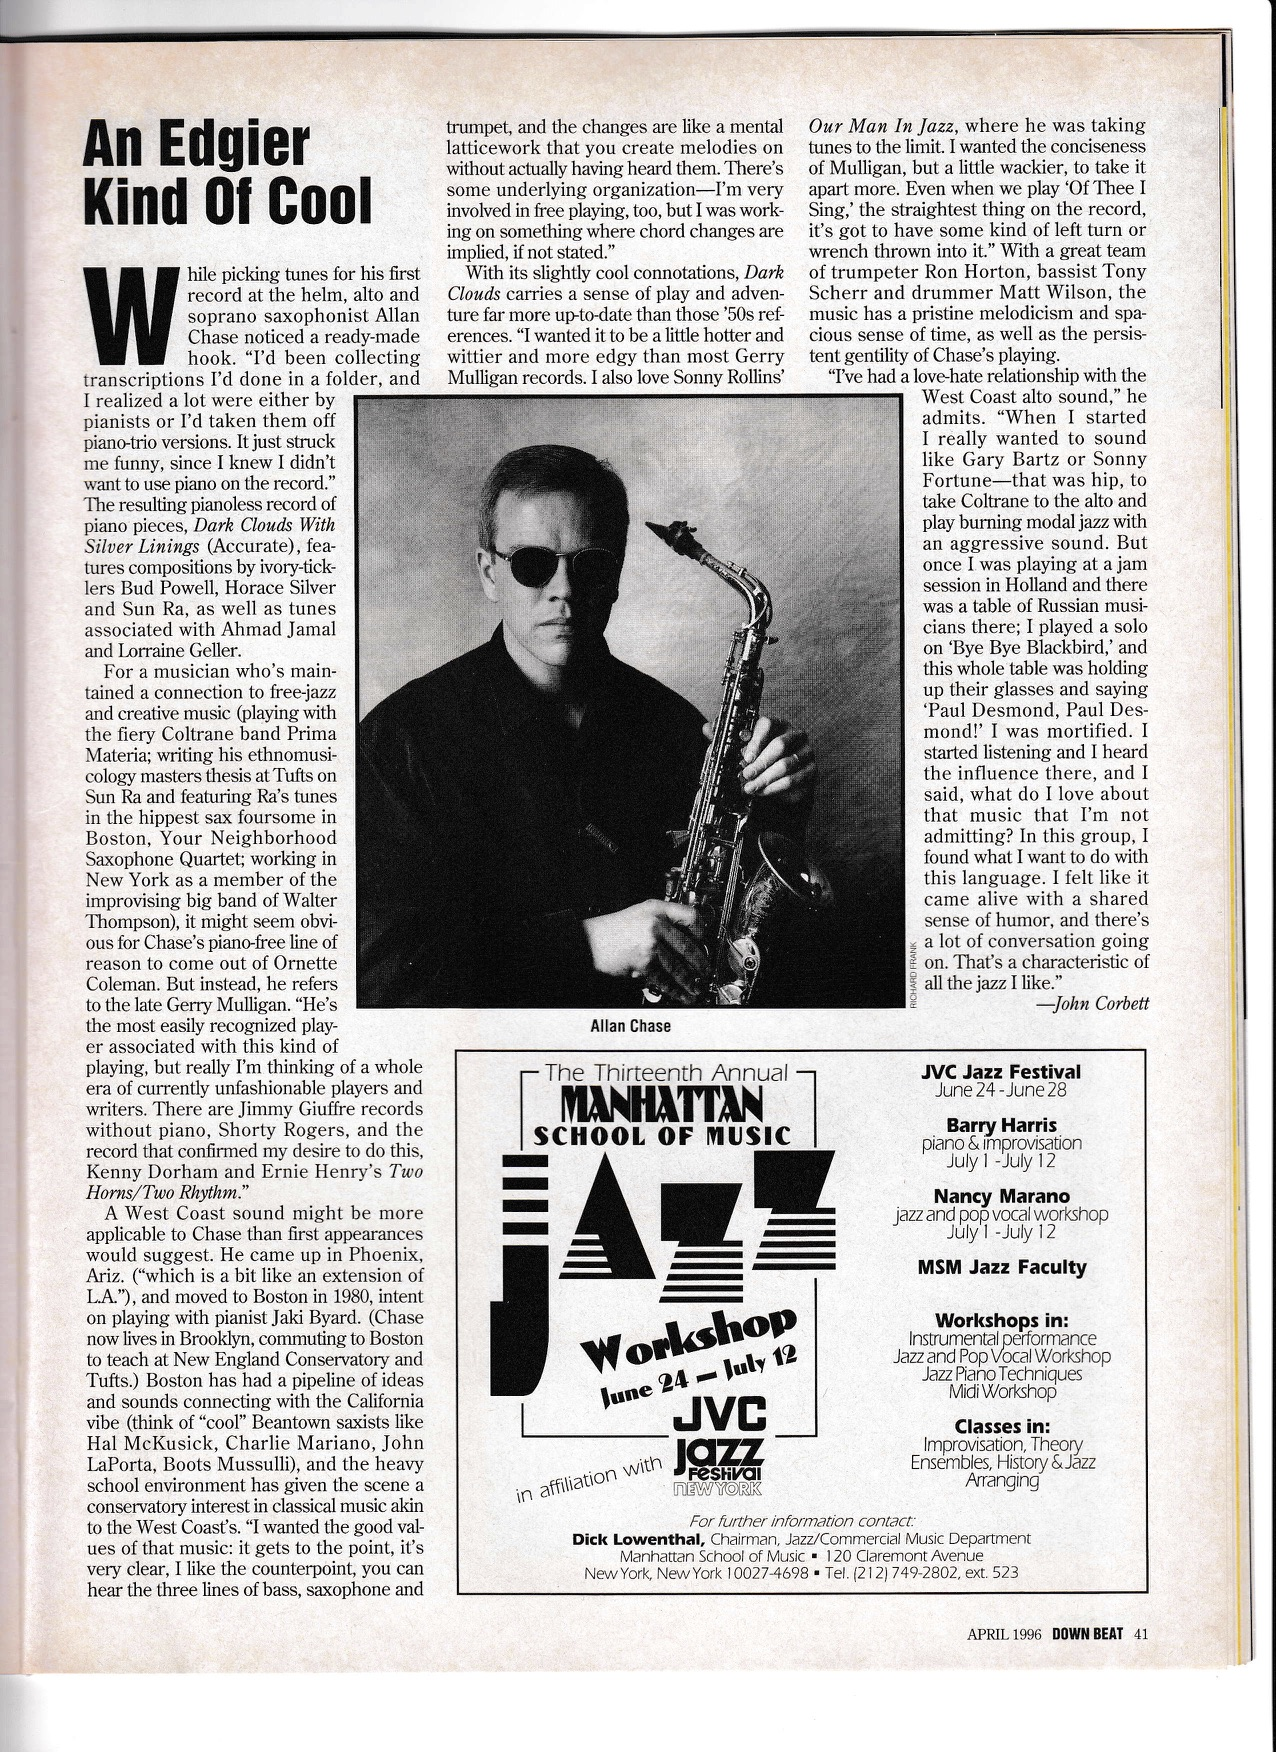 This April 1996  Downbeat  article was probably the biggest single piece of recognition I've received as a bandleader. I'm grateful to John Corbett for his interest. I think the repertoire I chose and the sound of the quartet were fresh and interesting to people at the time; the players were great and new, not yet as famous as they were to become; and the sound captured by engineer Jon Rosenberg at Sear Sound helped a lot, too.